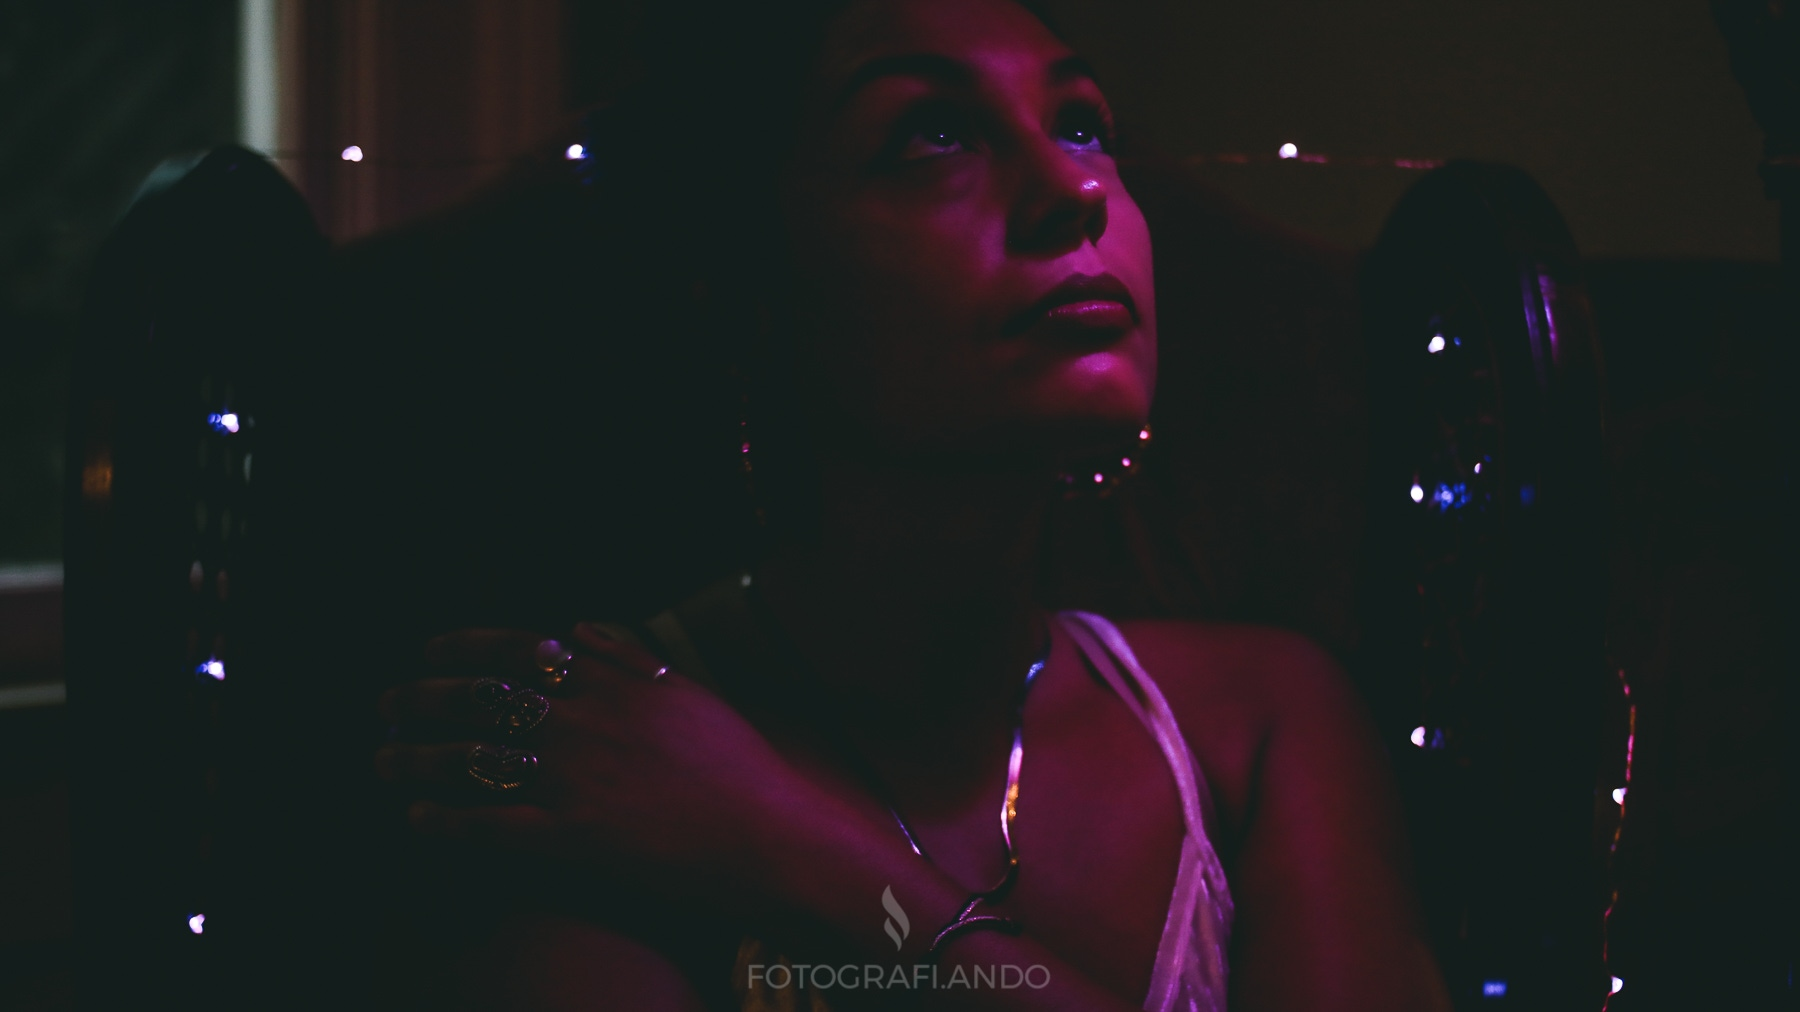 A woman of color in magenta lighting indoors, wreathed with tiny points of light, turns her face up to gaze upwards. She's wearing silver or gold jewelry and a strappy top.